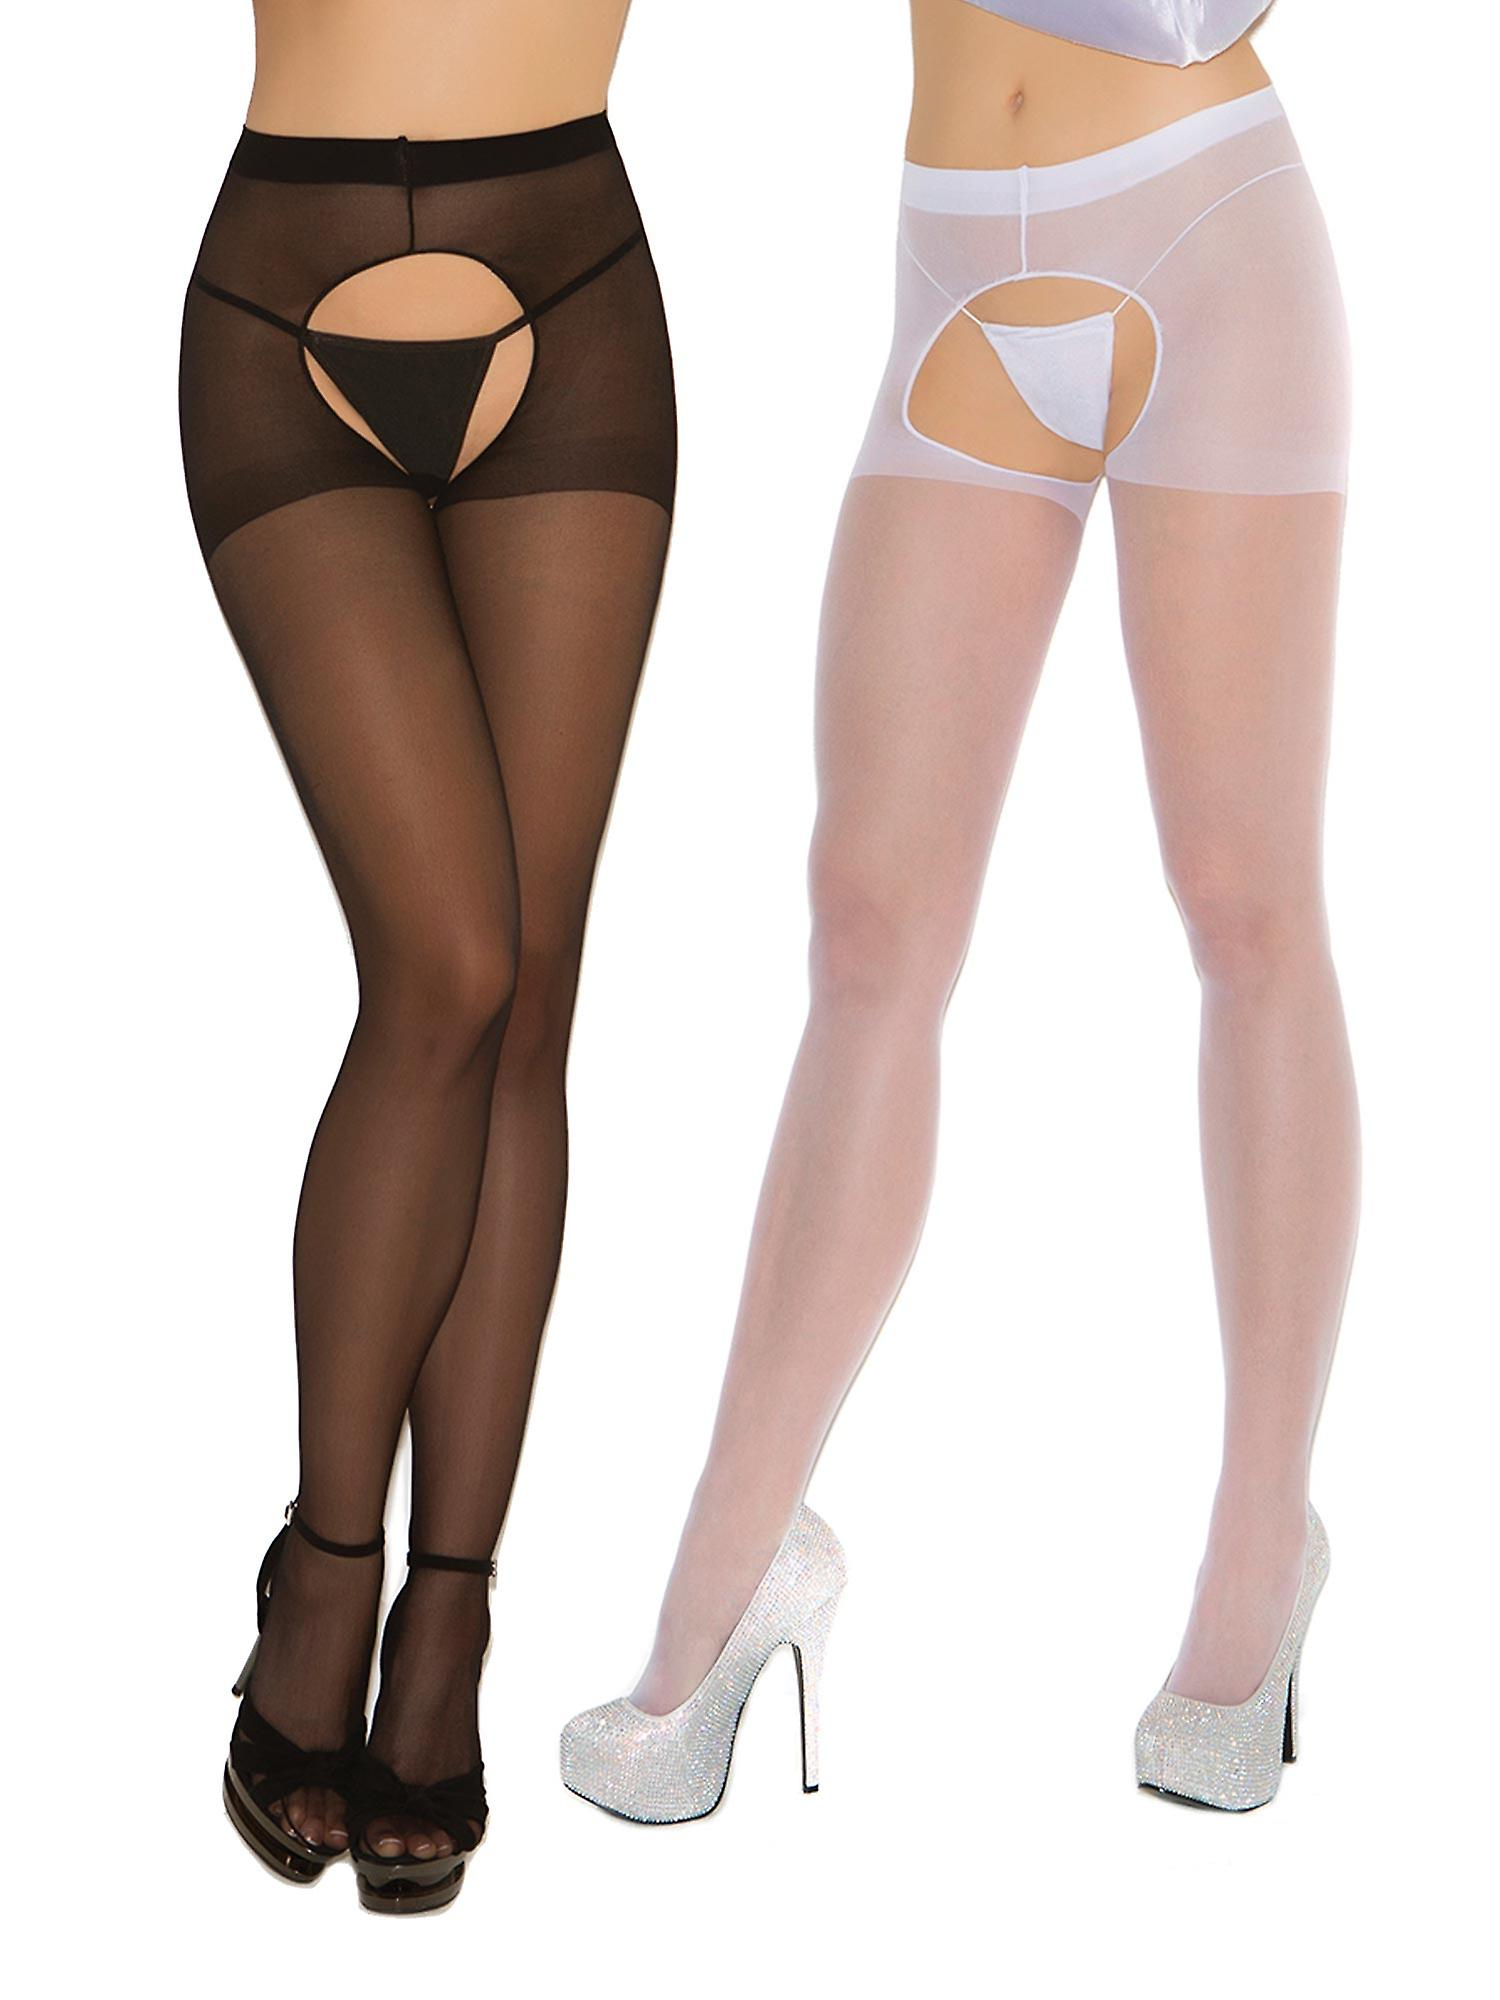 4dc76082b38 Womens Sexy Sheer Crotchless Pantyhose Hosiery Stockings Tights- 2 pack